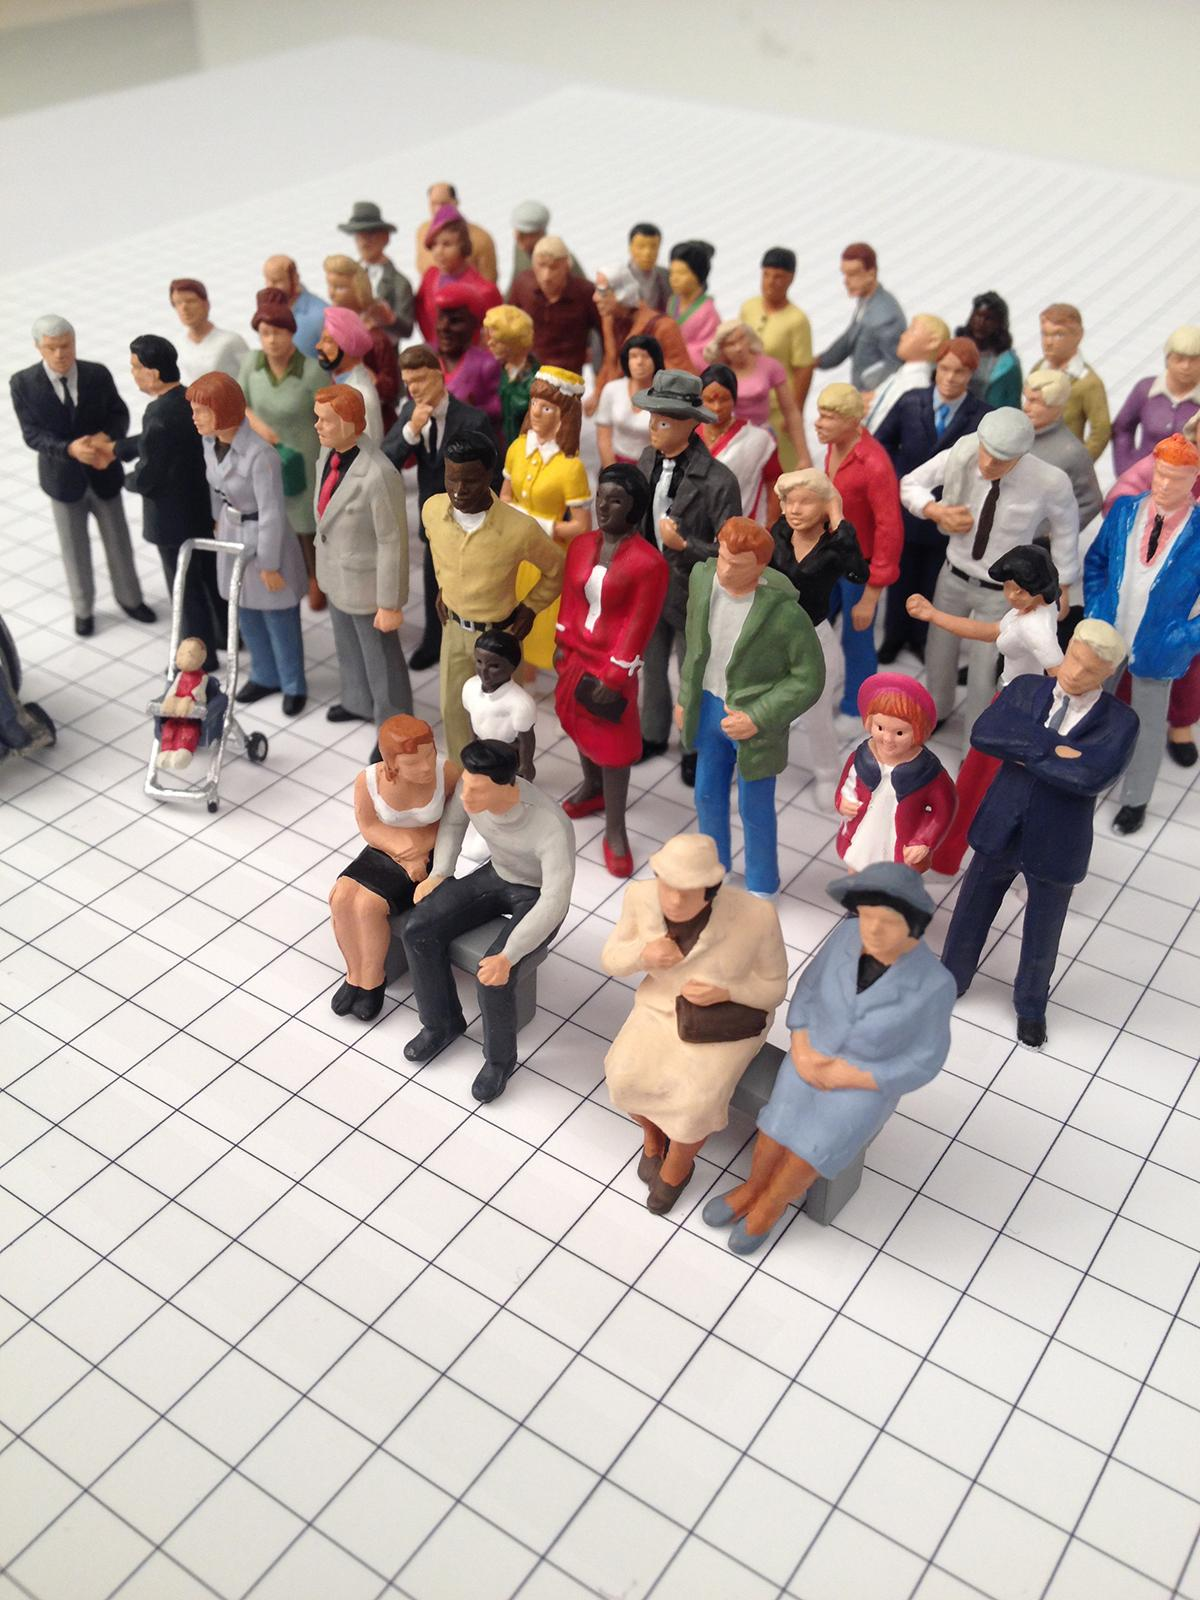 Six rows of colorful figurines of men, women, and children on a floor with a grid of black-and-white squares